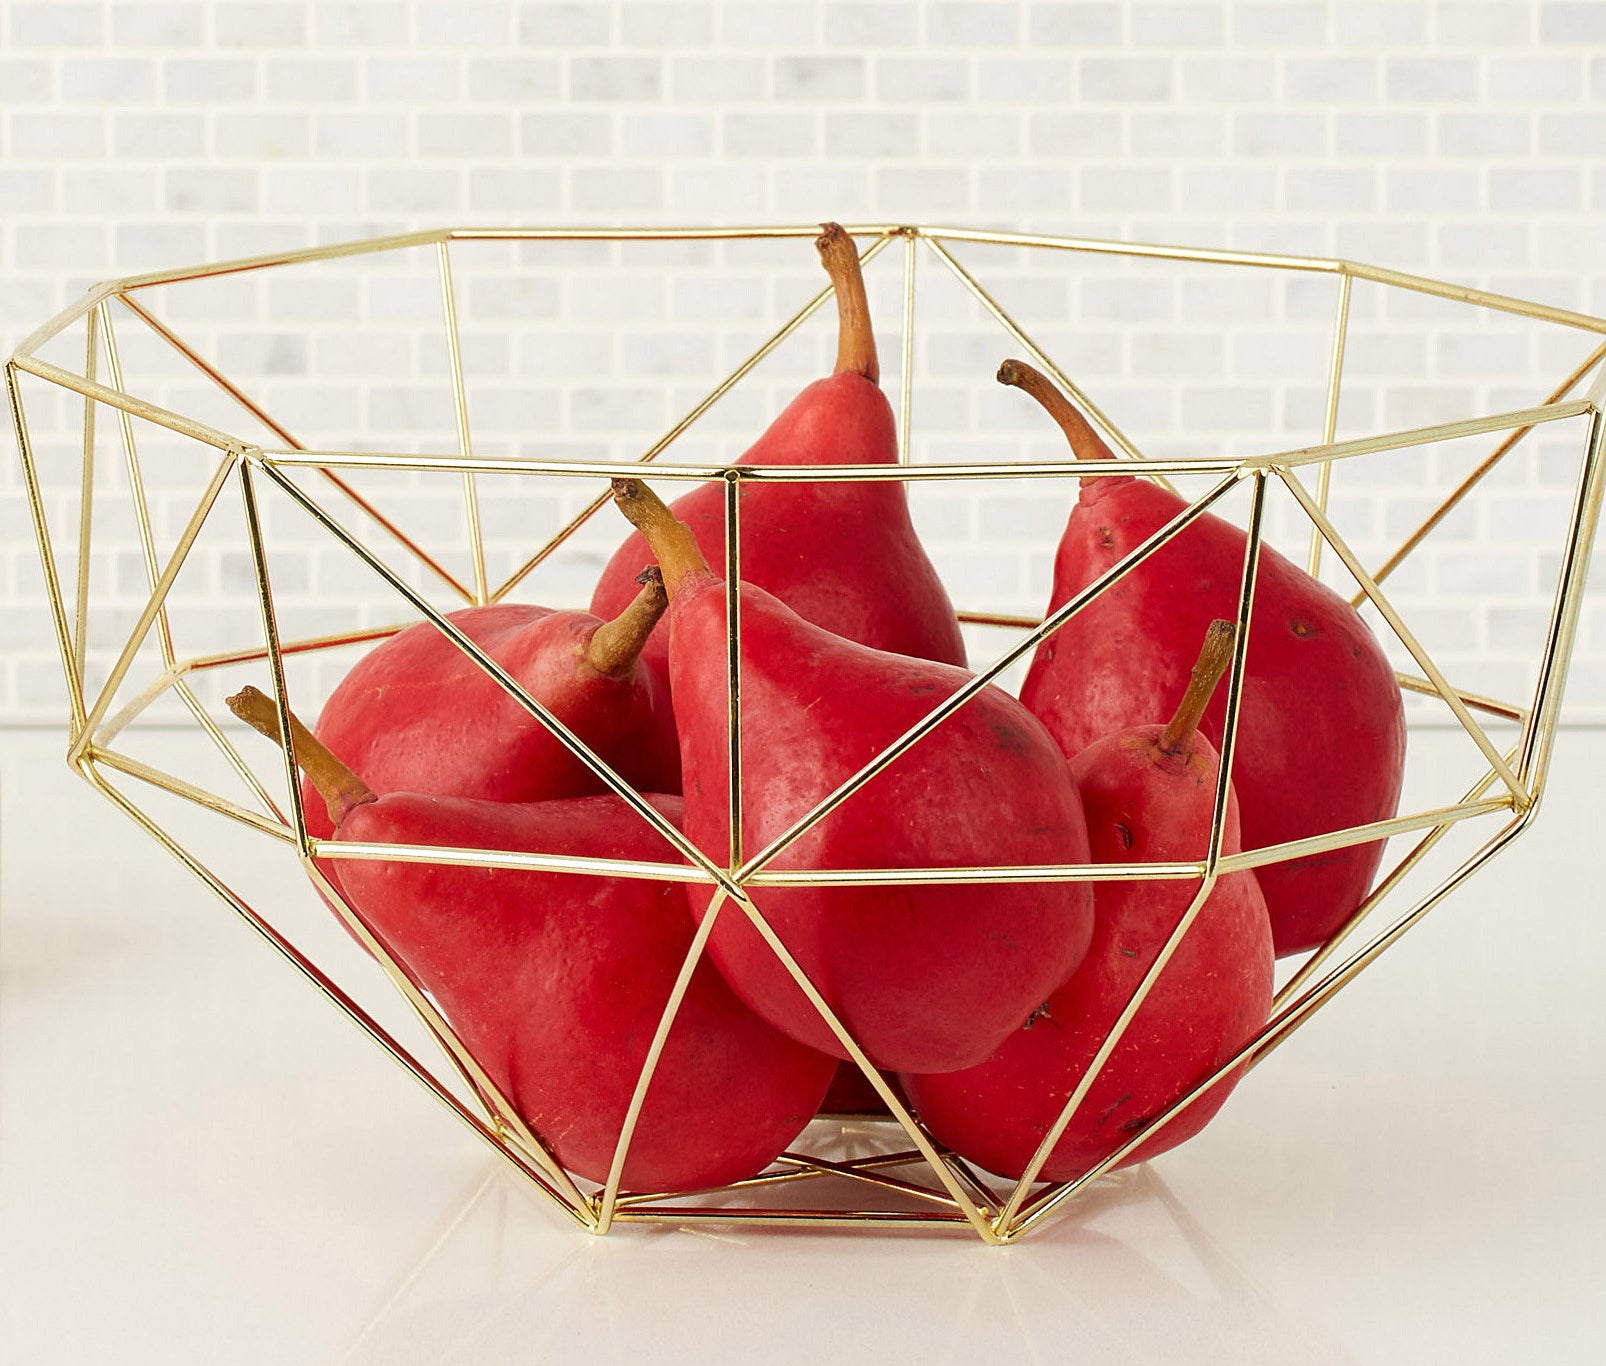 A metal bowl with pears inside it